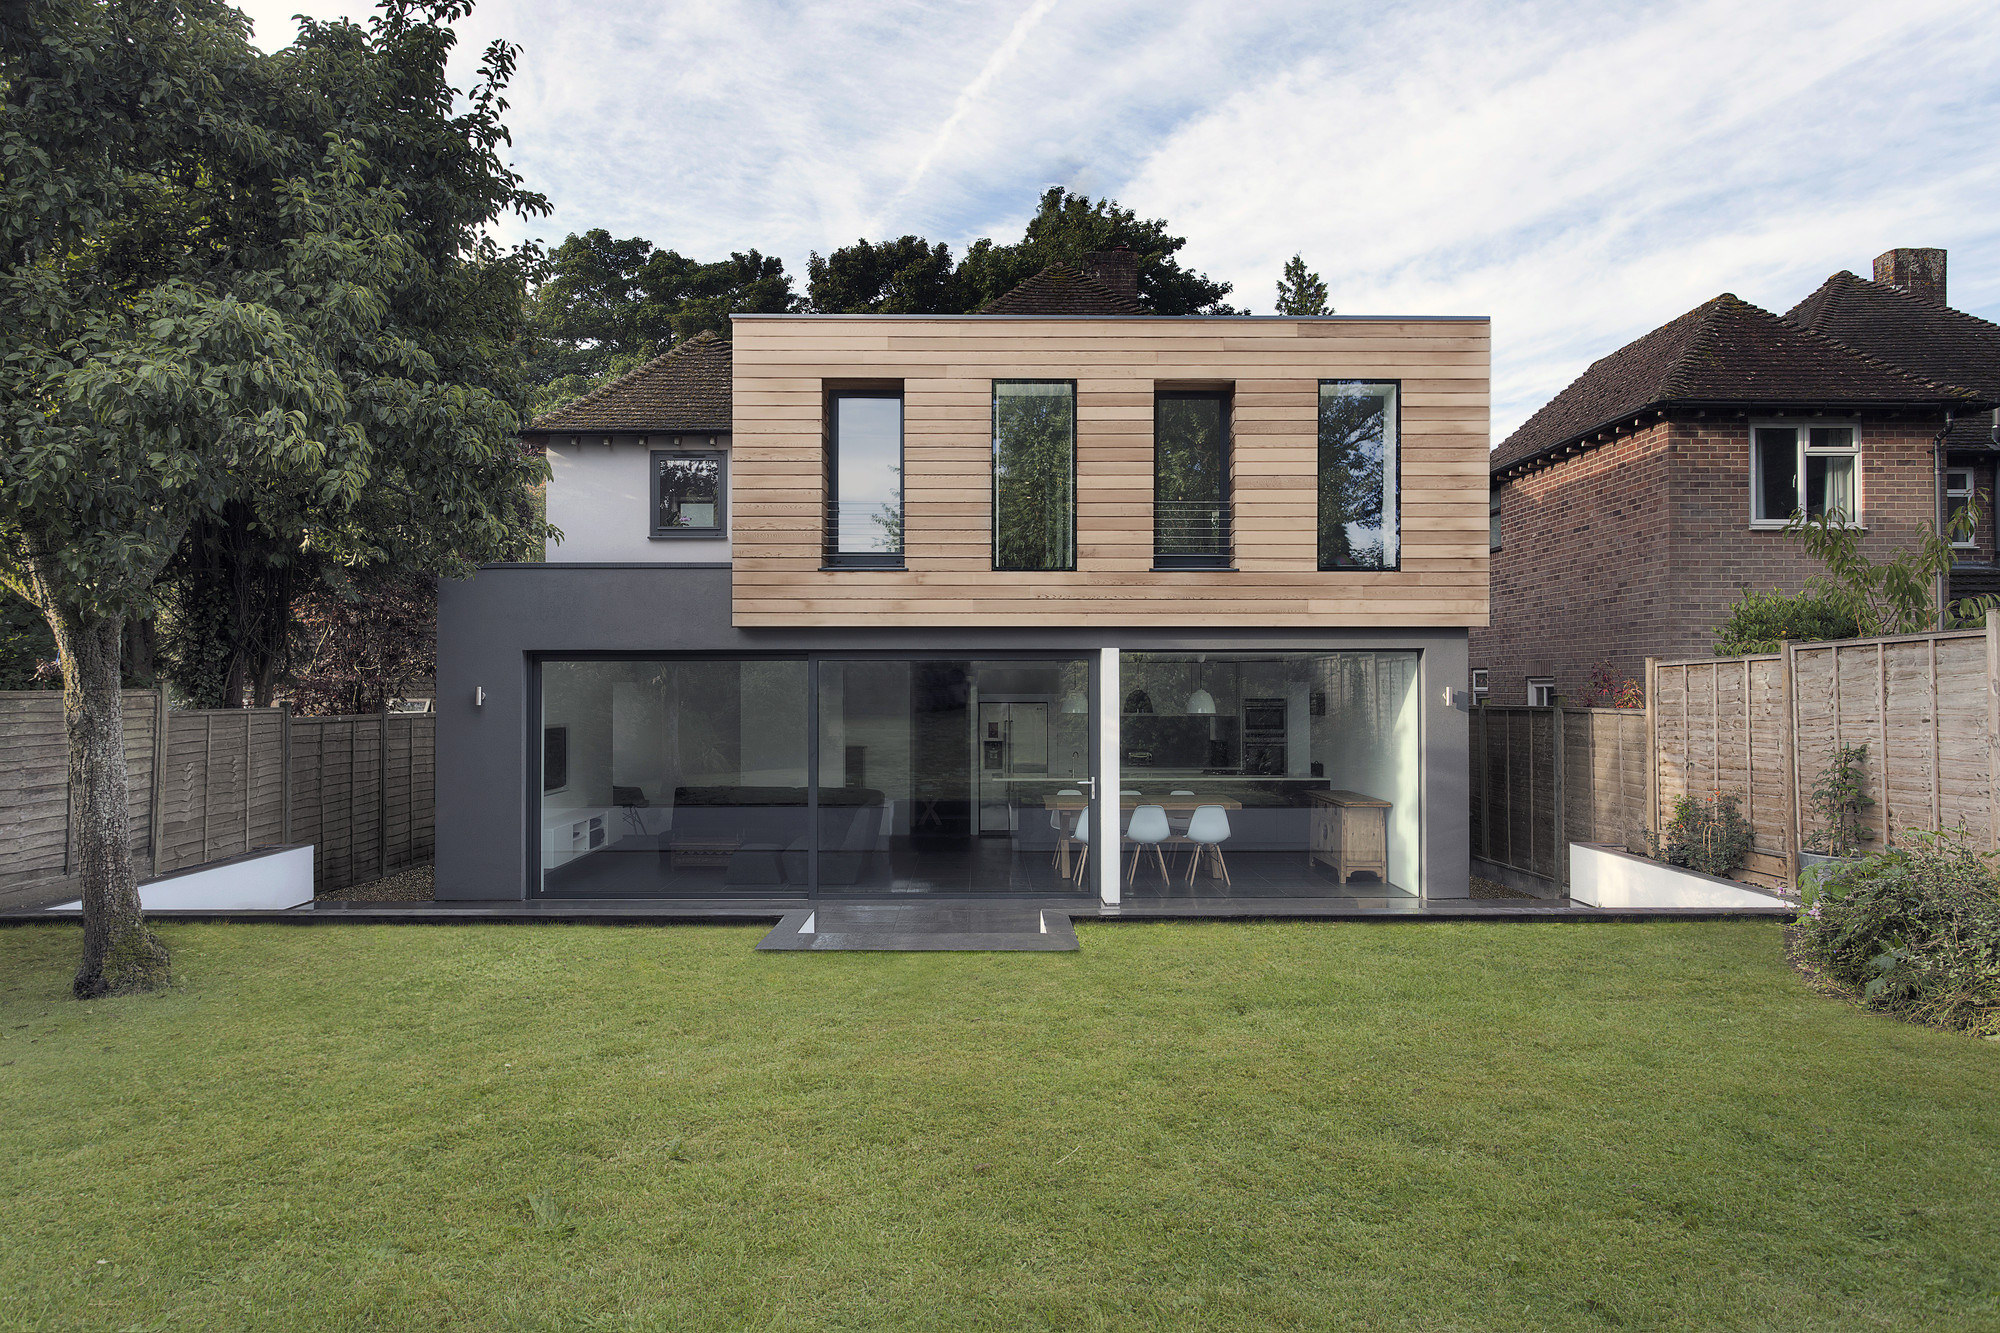 The Medic's House by AR Design Studio